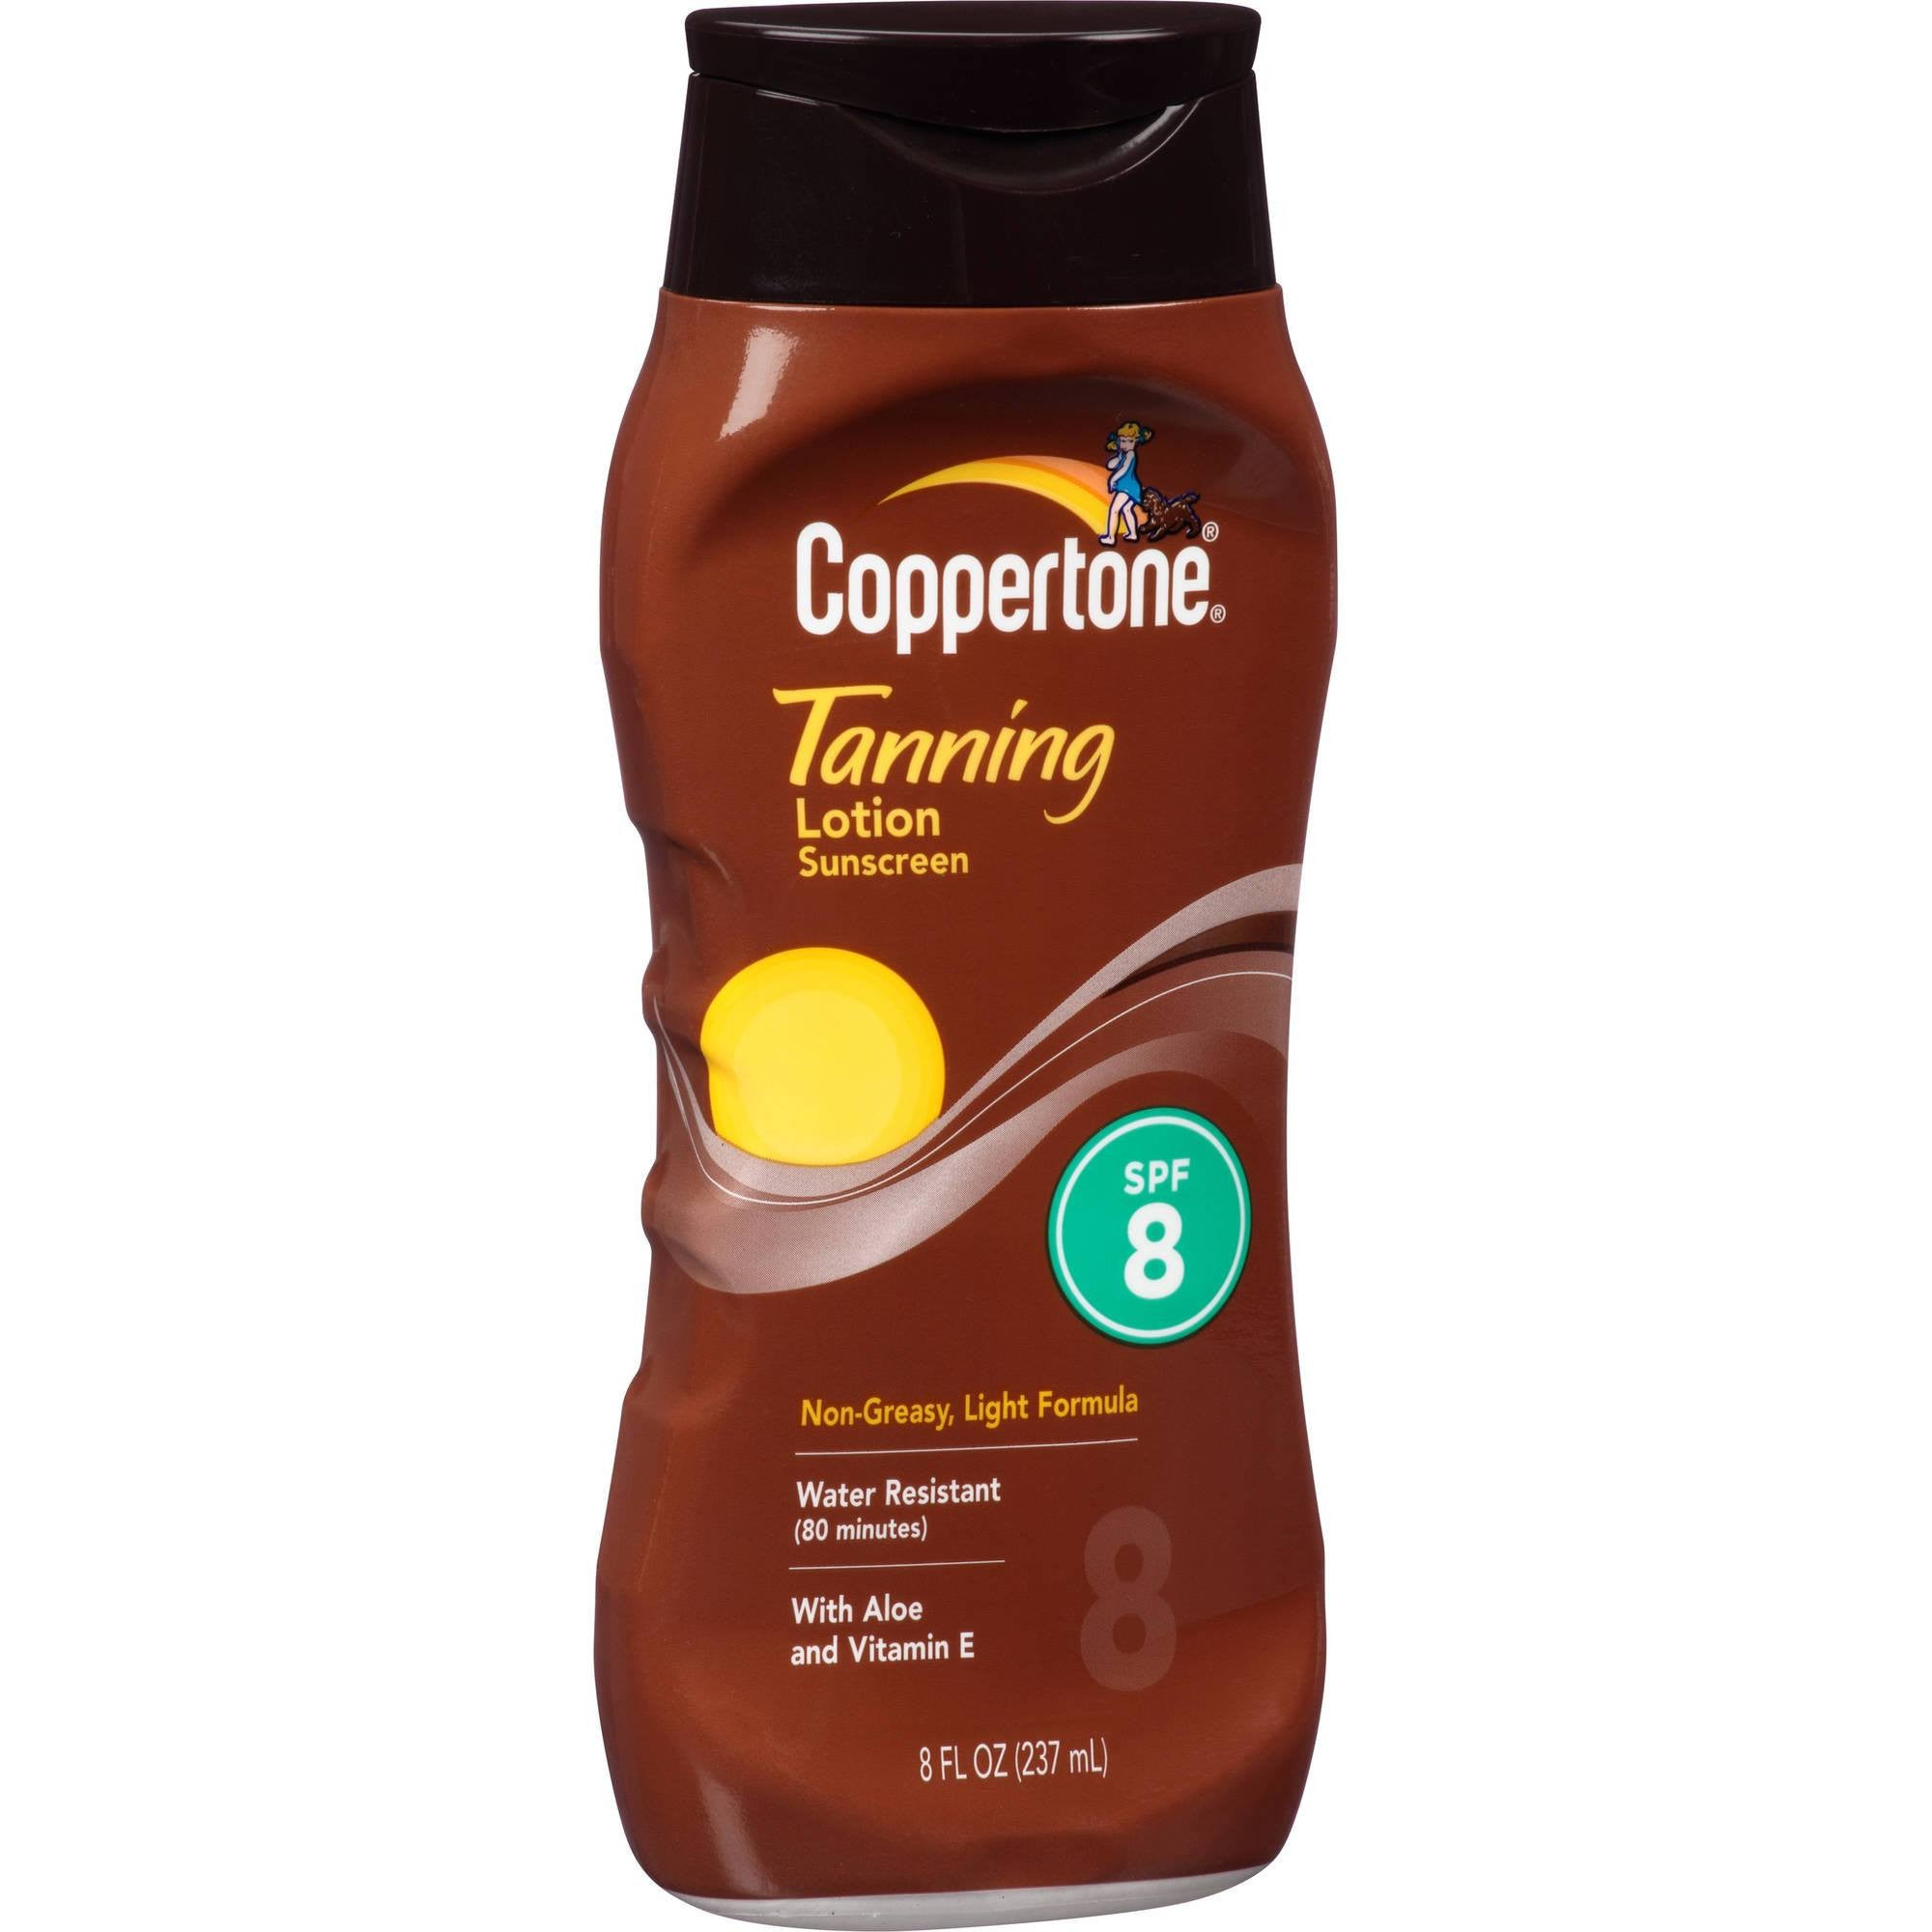 Buy Coppertone Tanning Sunscreen Lotion 8 SPF by Schering Plough from a SDVOSB | Sunscreen